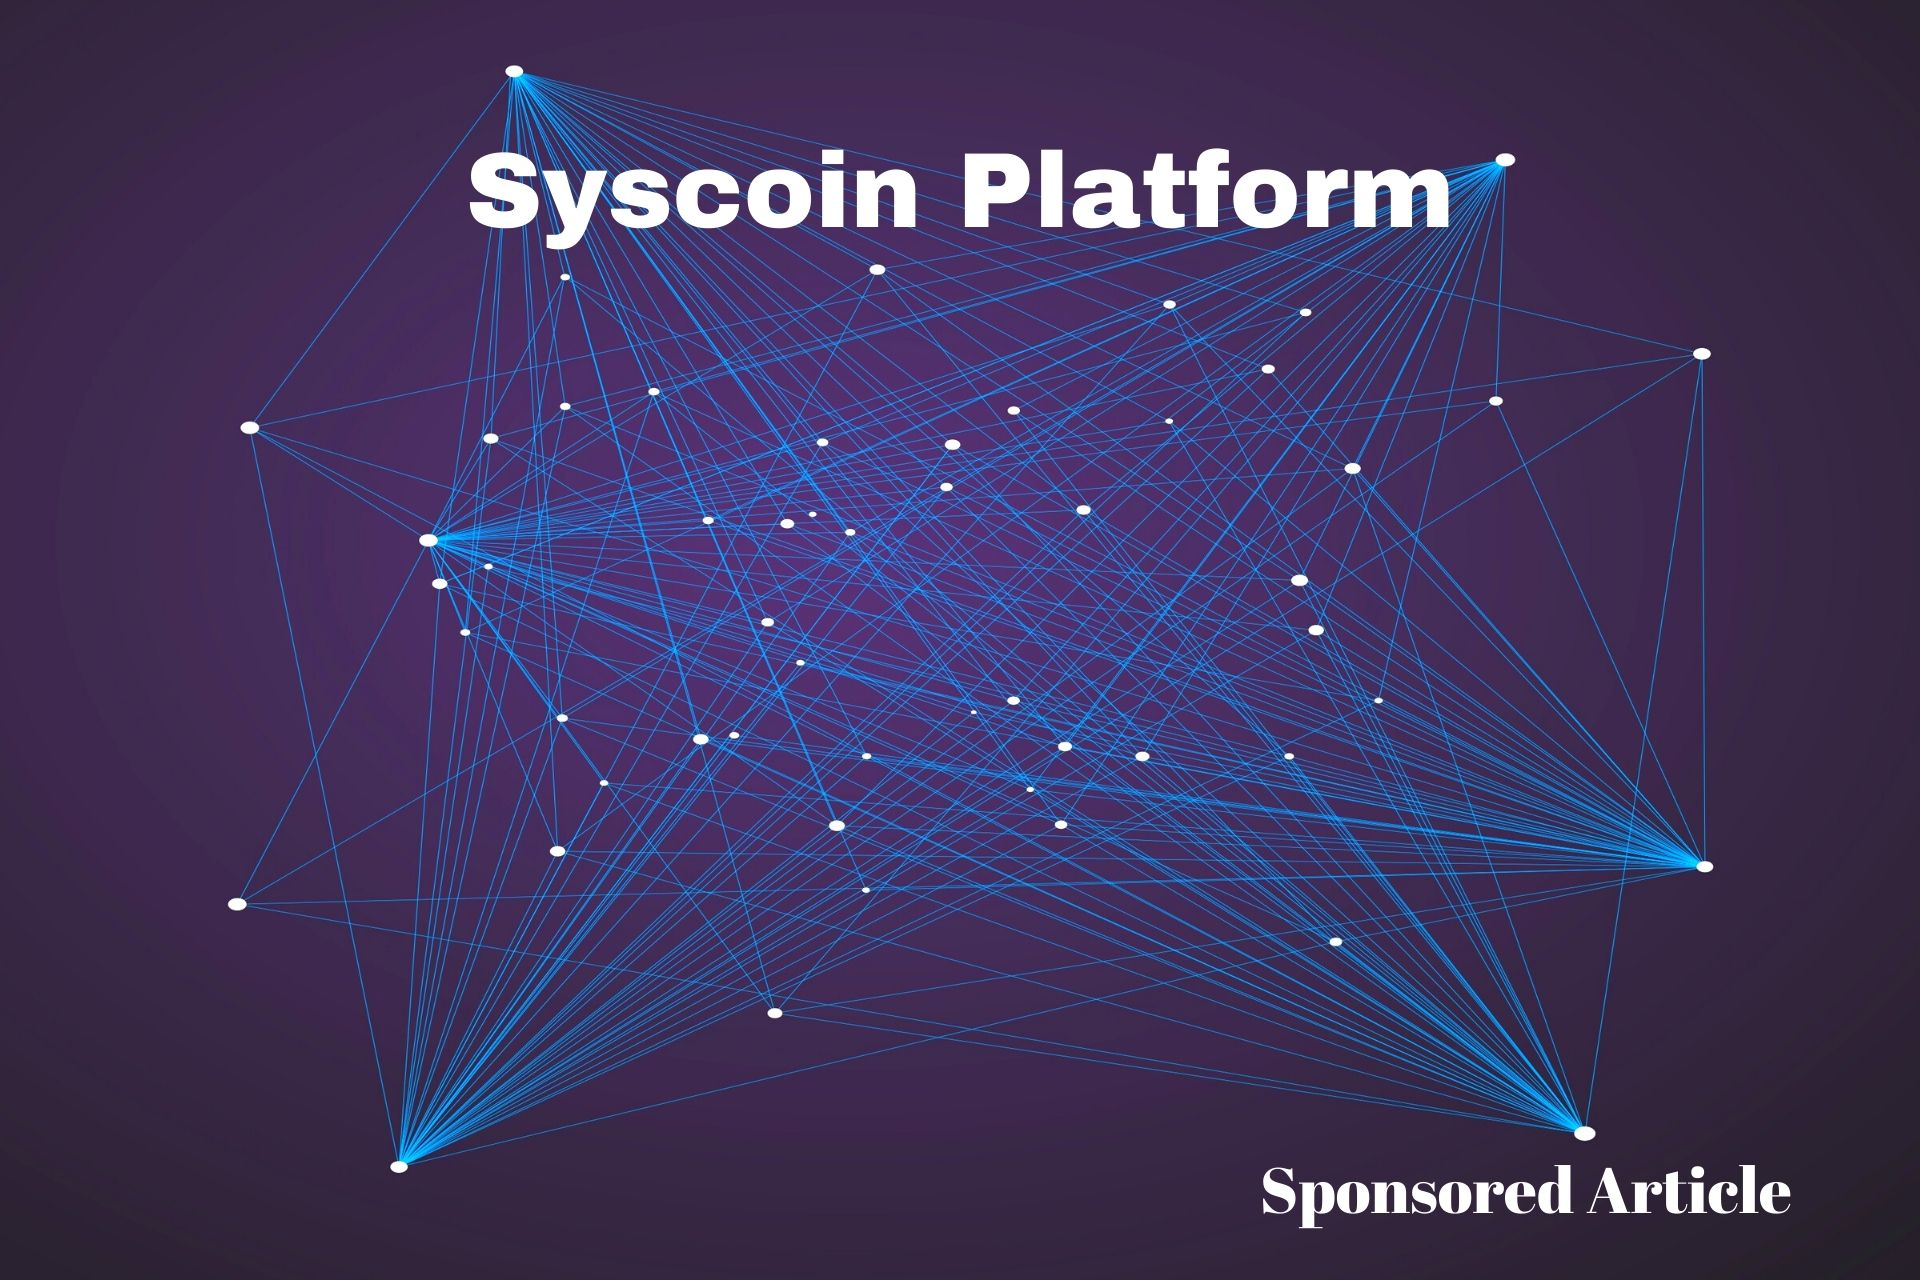 Get Your Business on the Blockchain with Syscoin's One-stop Solution